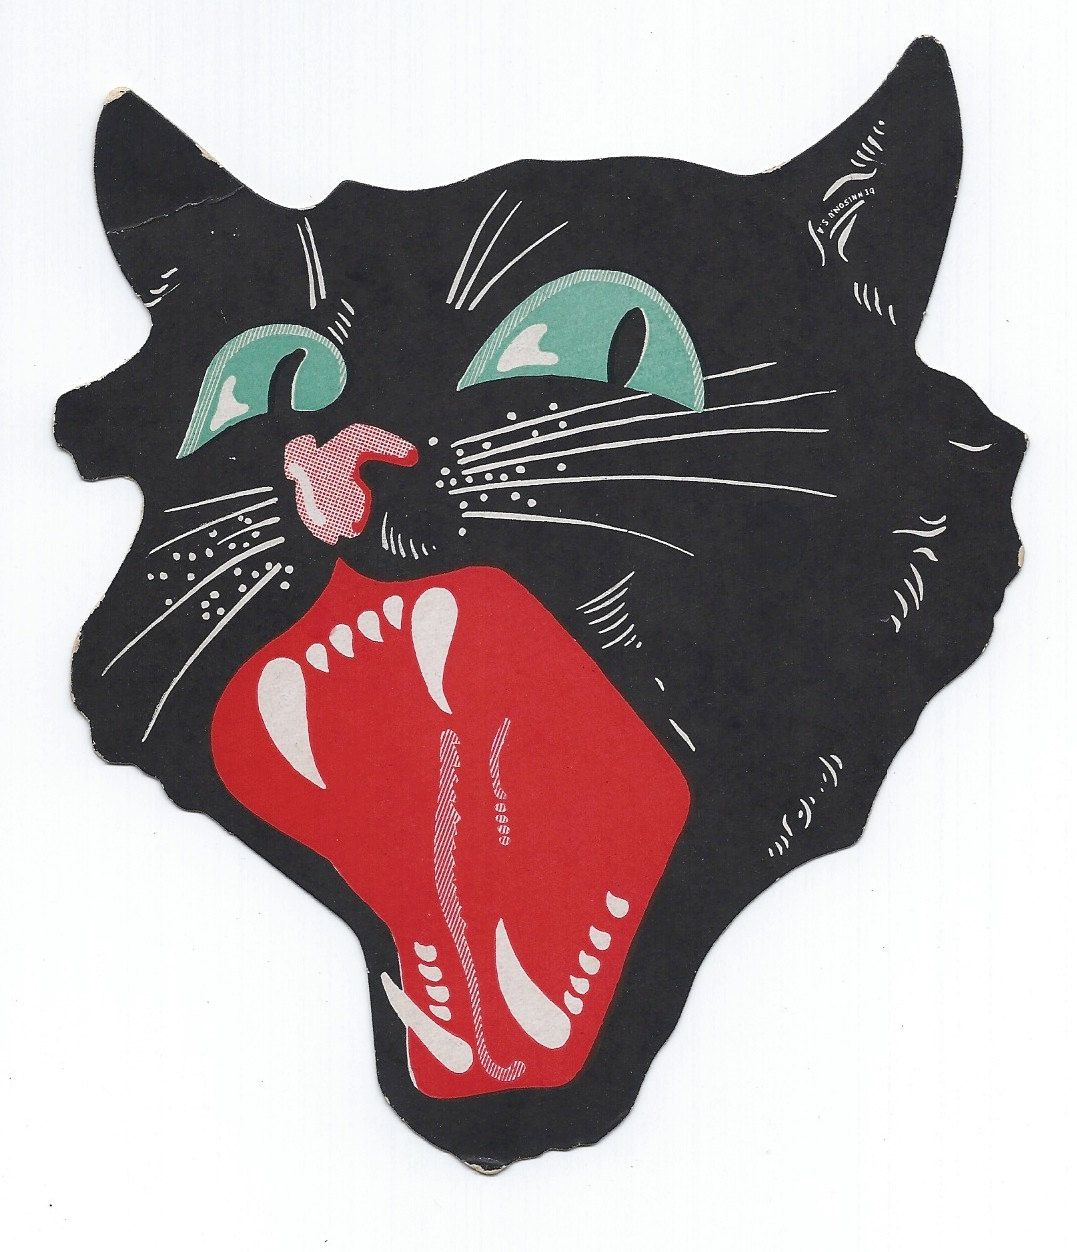 vintage halloween dennison snarling black cat die cut 1920s art deco collectible cut out antique decoration - Halloween Cat Decorations